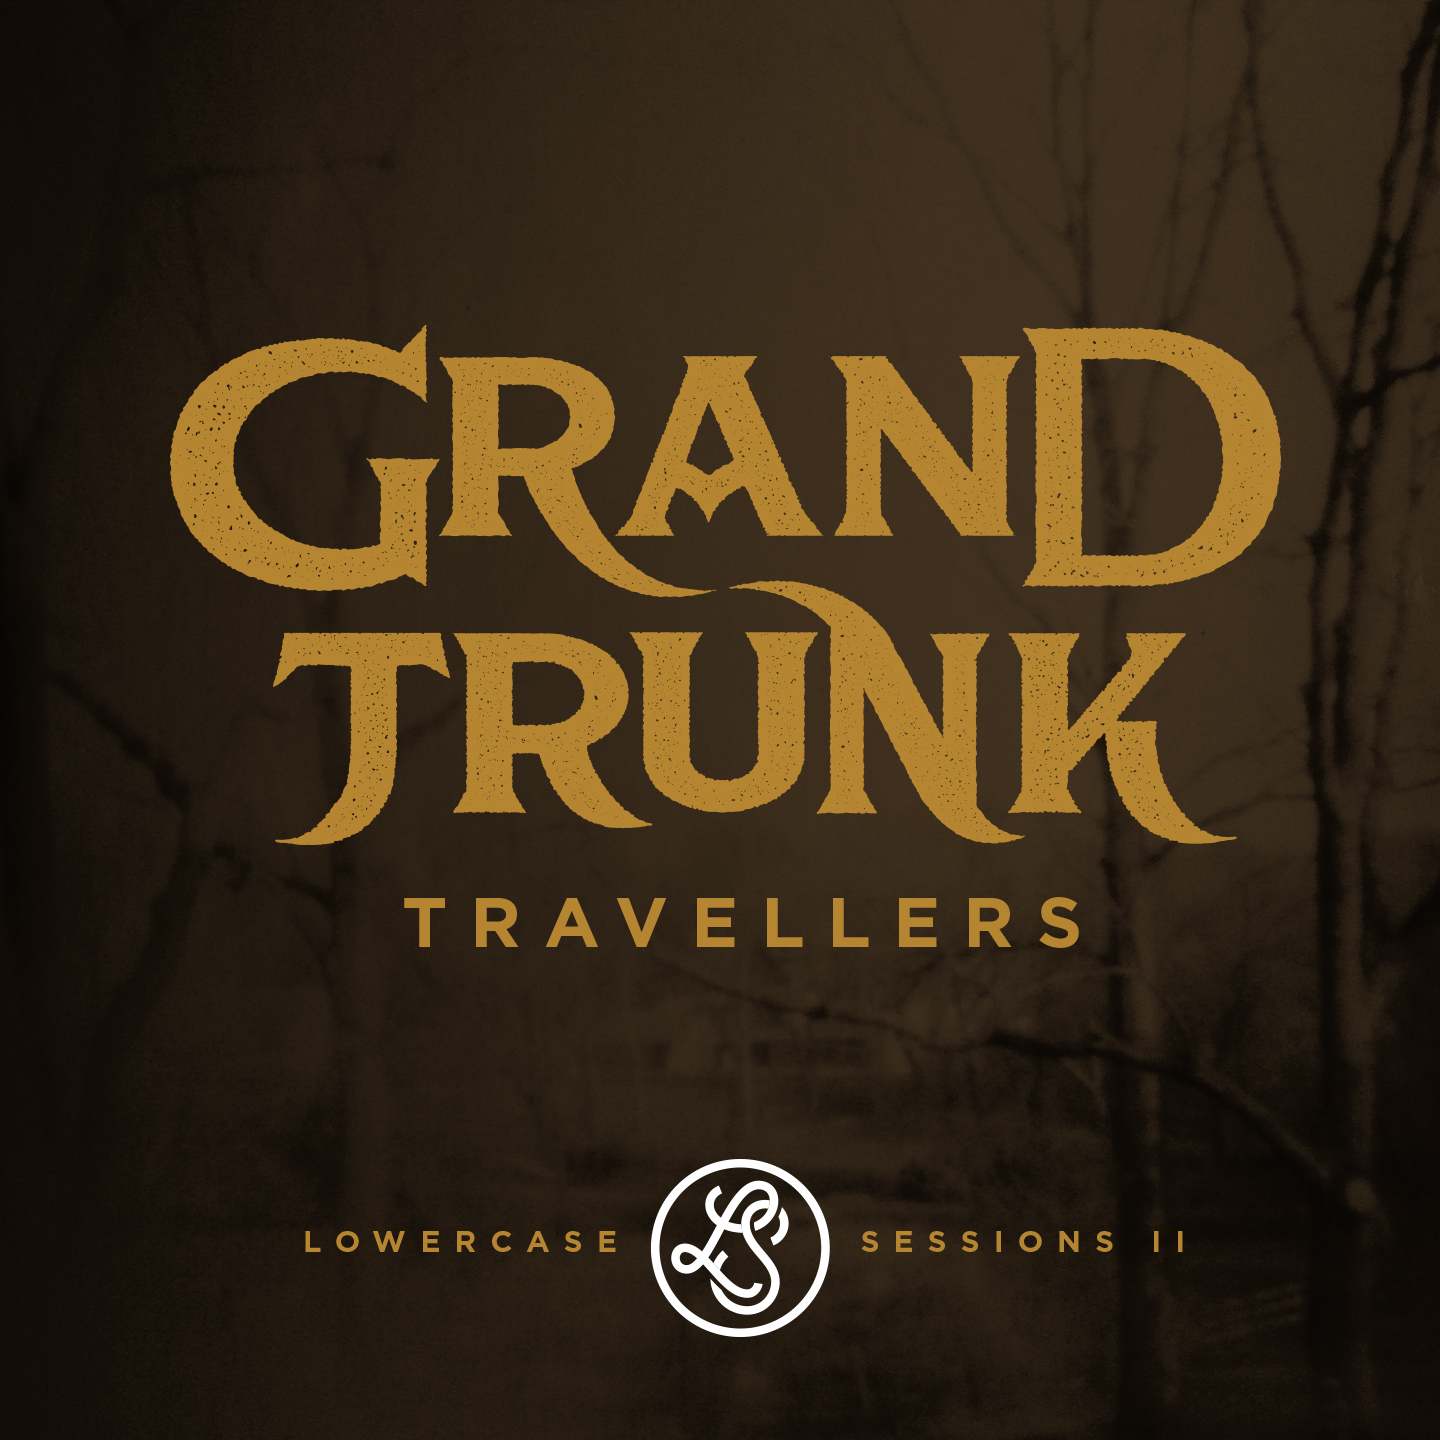 Grand Trunk Travellers – Lowercase Sessions II